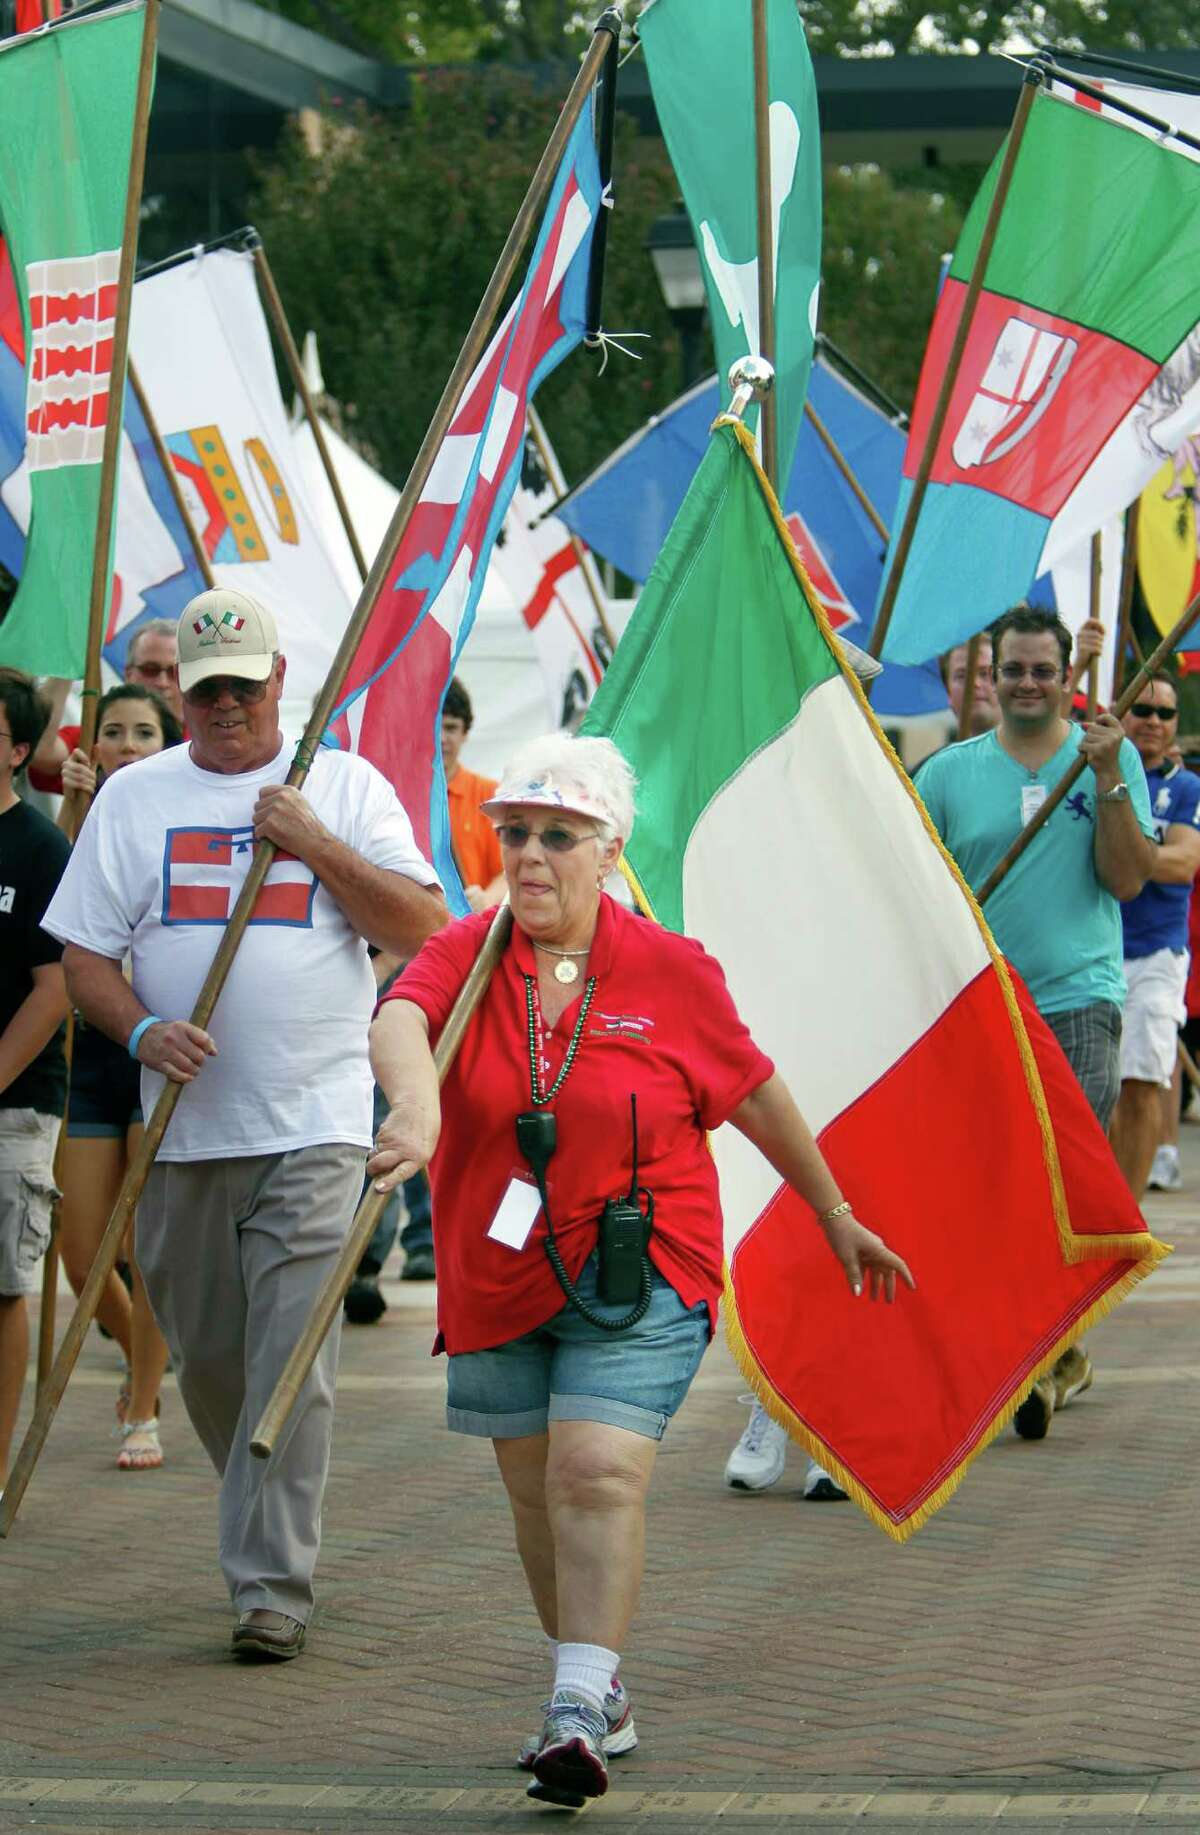 Margie Dipuma, center, awarded ICCC's Christopher Columbus Award, carries the Italian Flag during the Flag Ceremony & Awards to start the 34th Houston Italian Festival at the University of St. Thomas on Saturday.